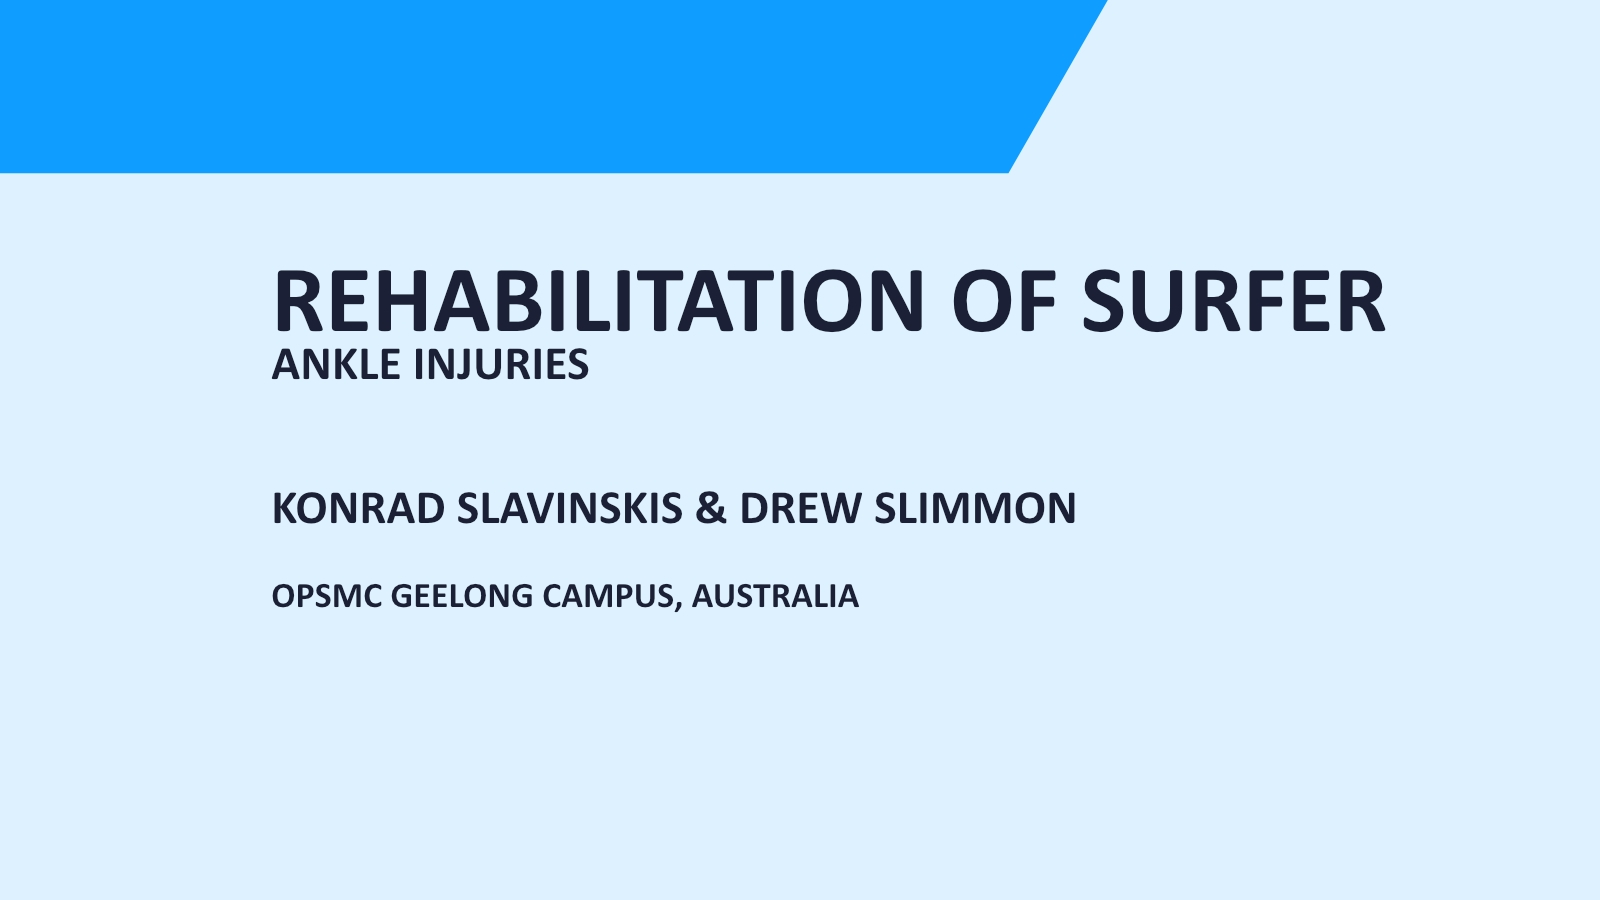 Narrative: from acute injury to rehabilitation Surfing Victoria